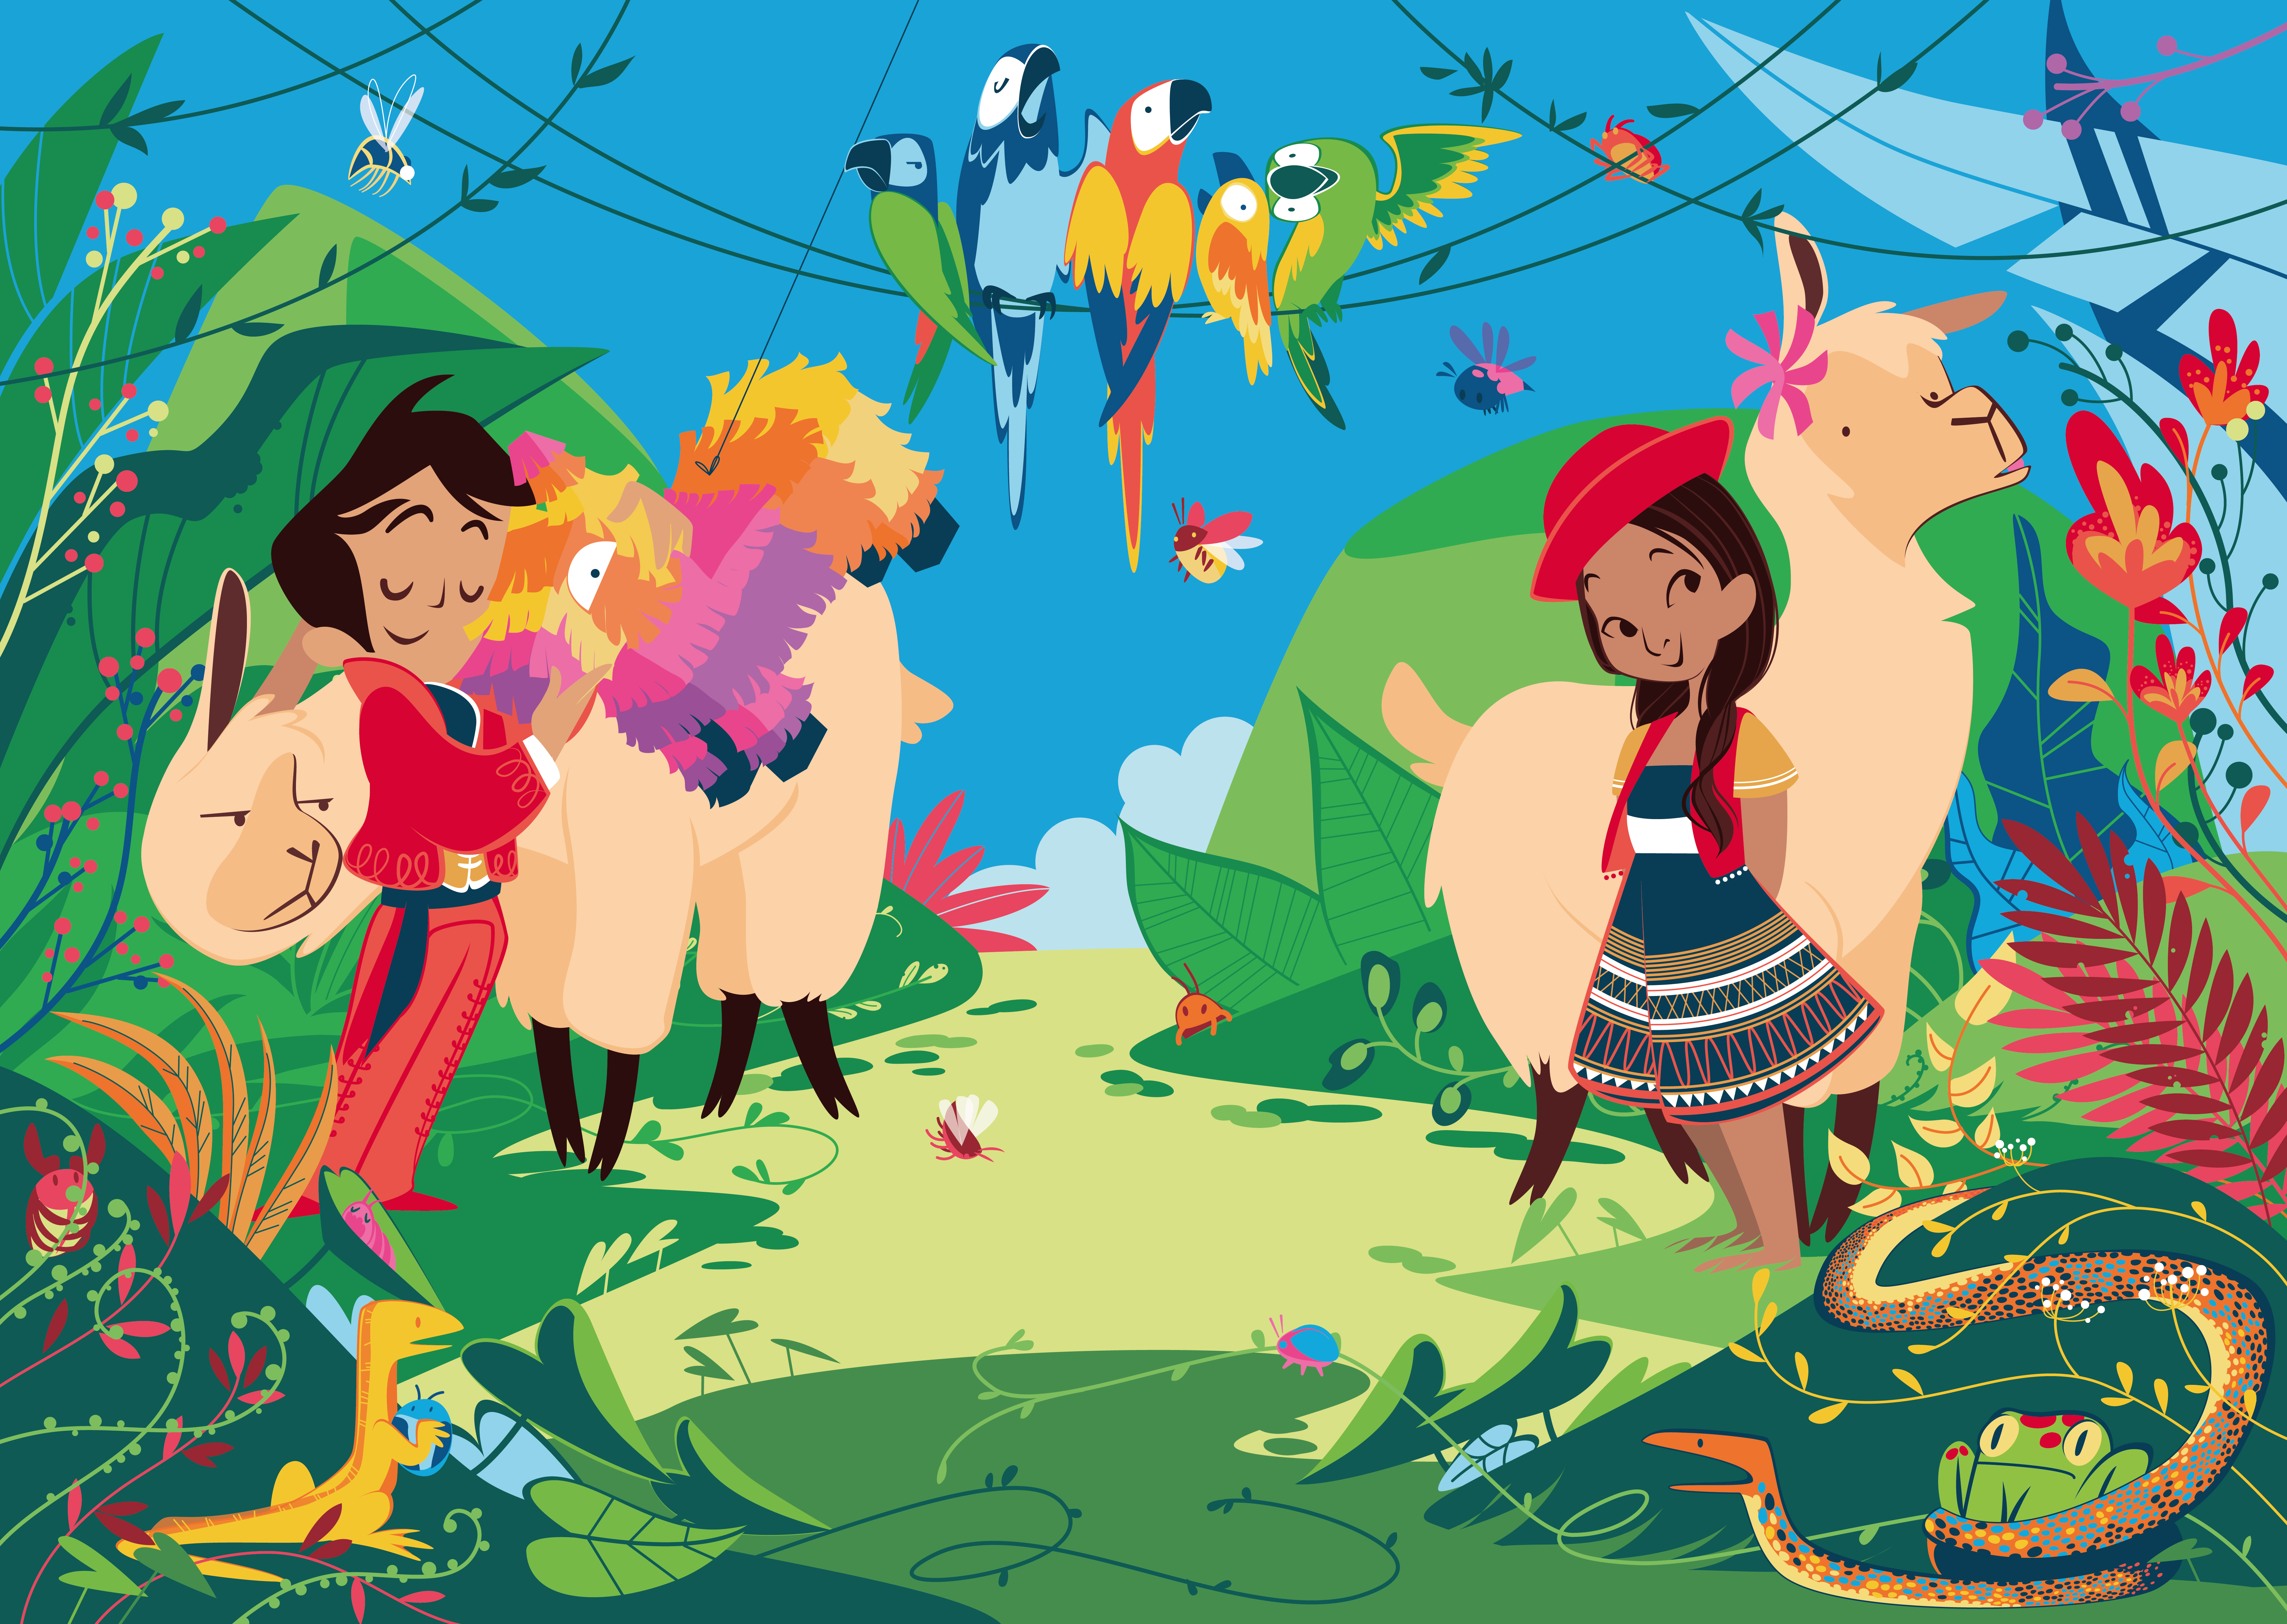 scene with two children: the child on the left is Mexican, has a pot; the girl on the right has a red hat and she is of Peruvian ethnicity. Around a tropical forest with colorful parrots, strange insects and hungry snakes